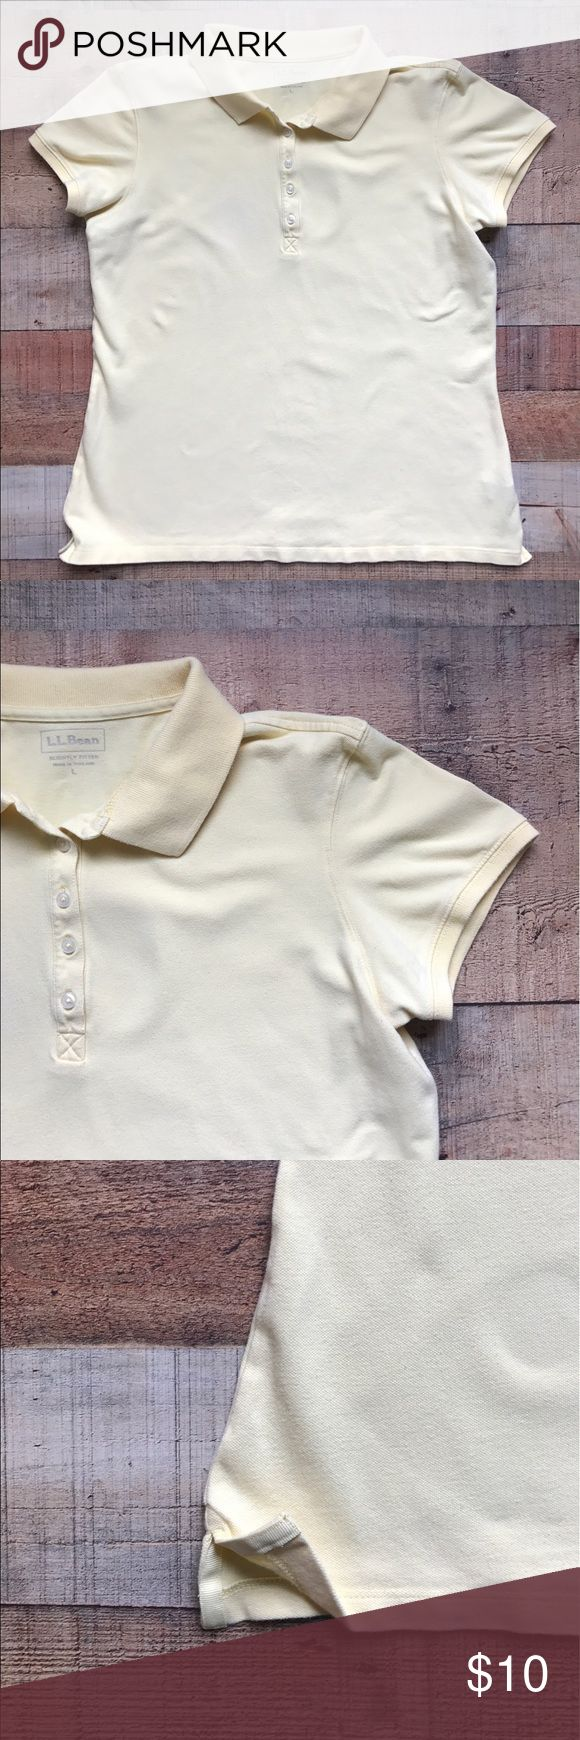 L.L. Bean Polo Shirt Light yellow polo shirt with a not noticeable stain (see last photos). Lightly fitted with split sides. L.L. Bean Tops Button Down Shirts